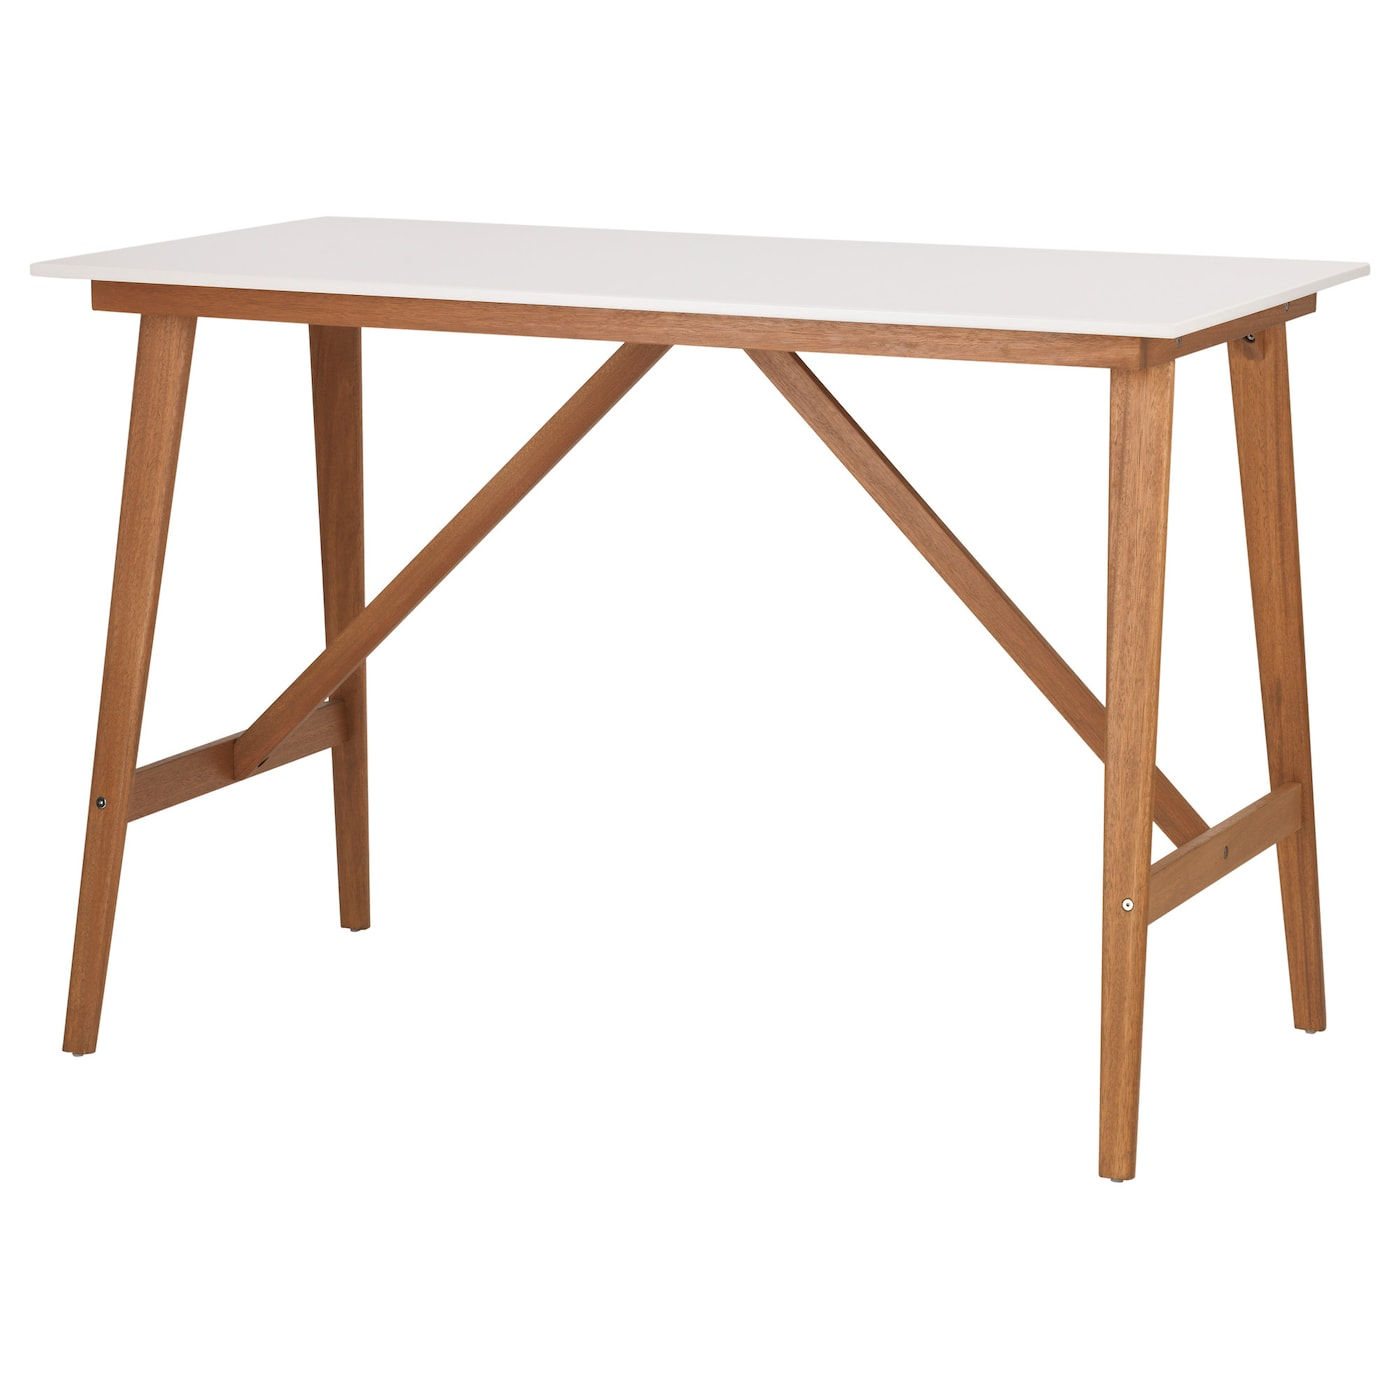 Fanbyn bar table white 140x78x95 cm ikea - Ikea table haute bar ...